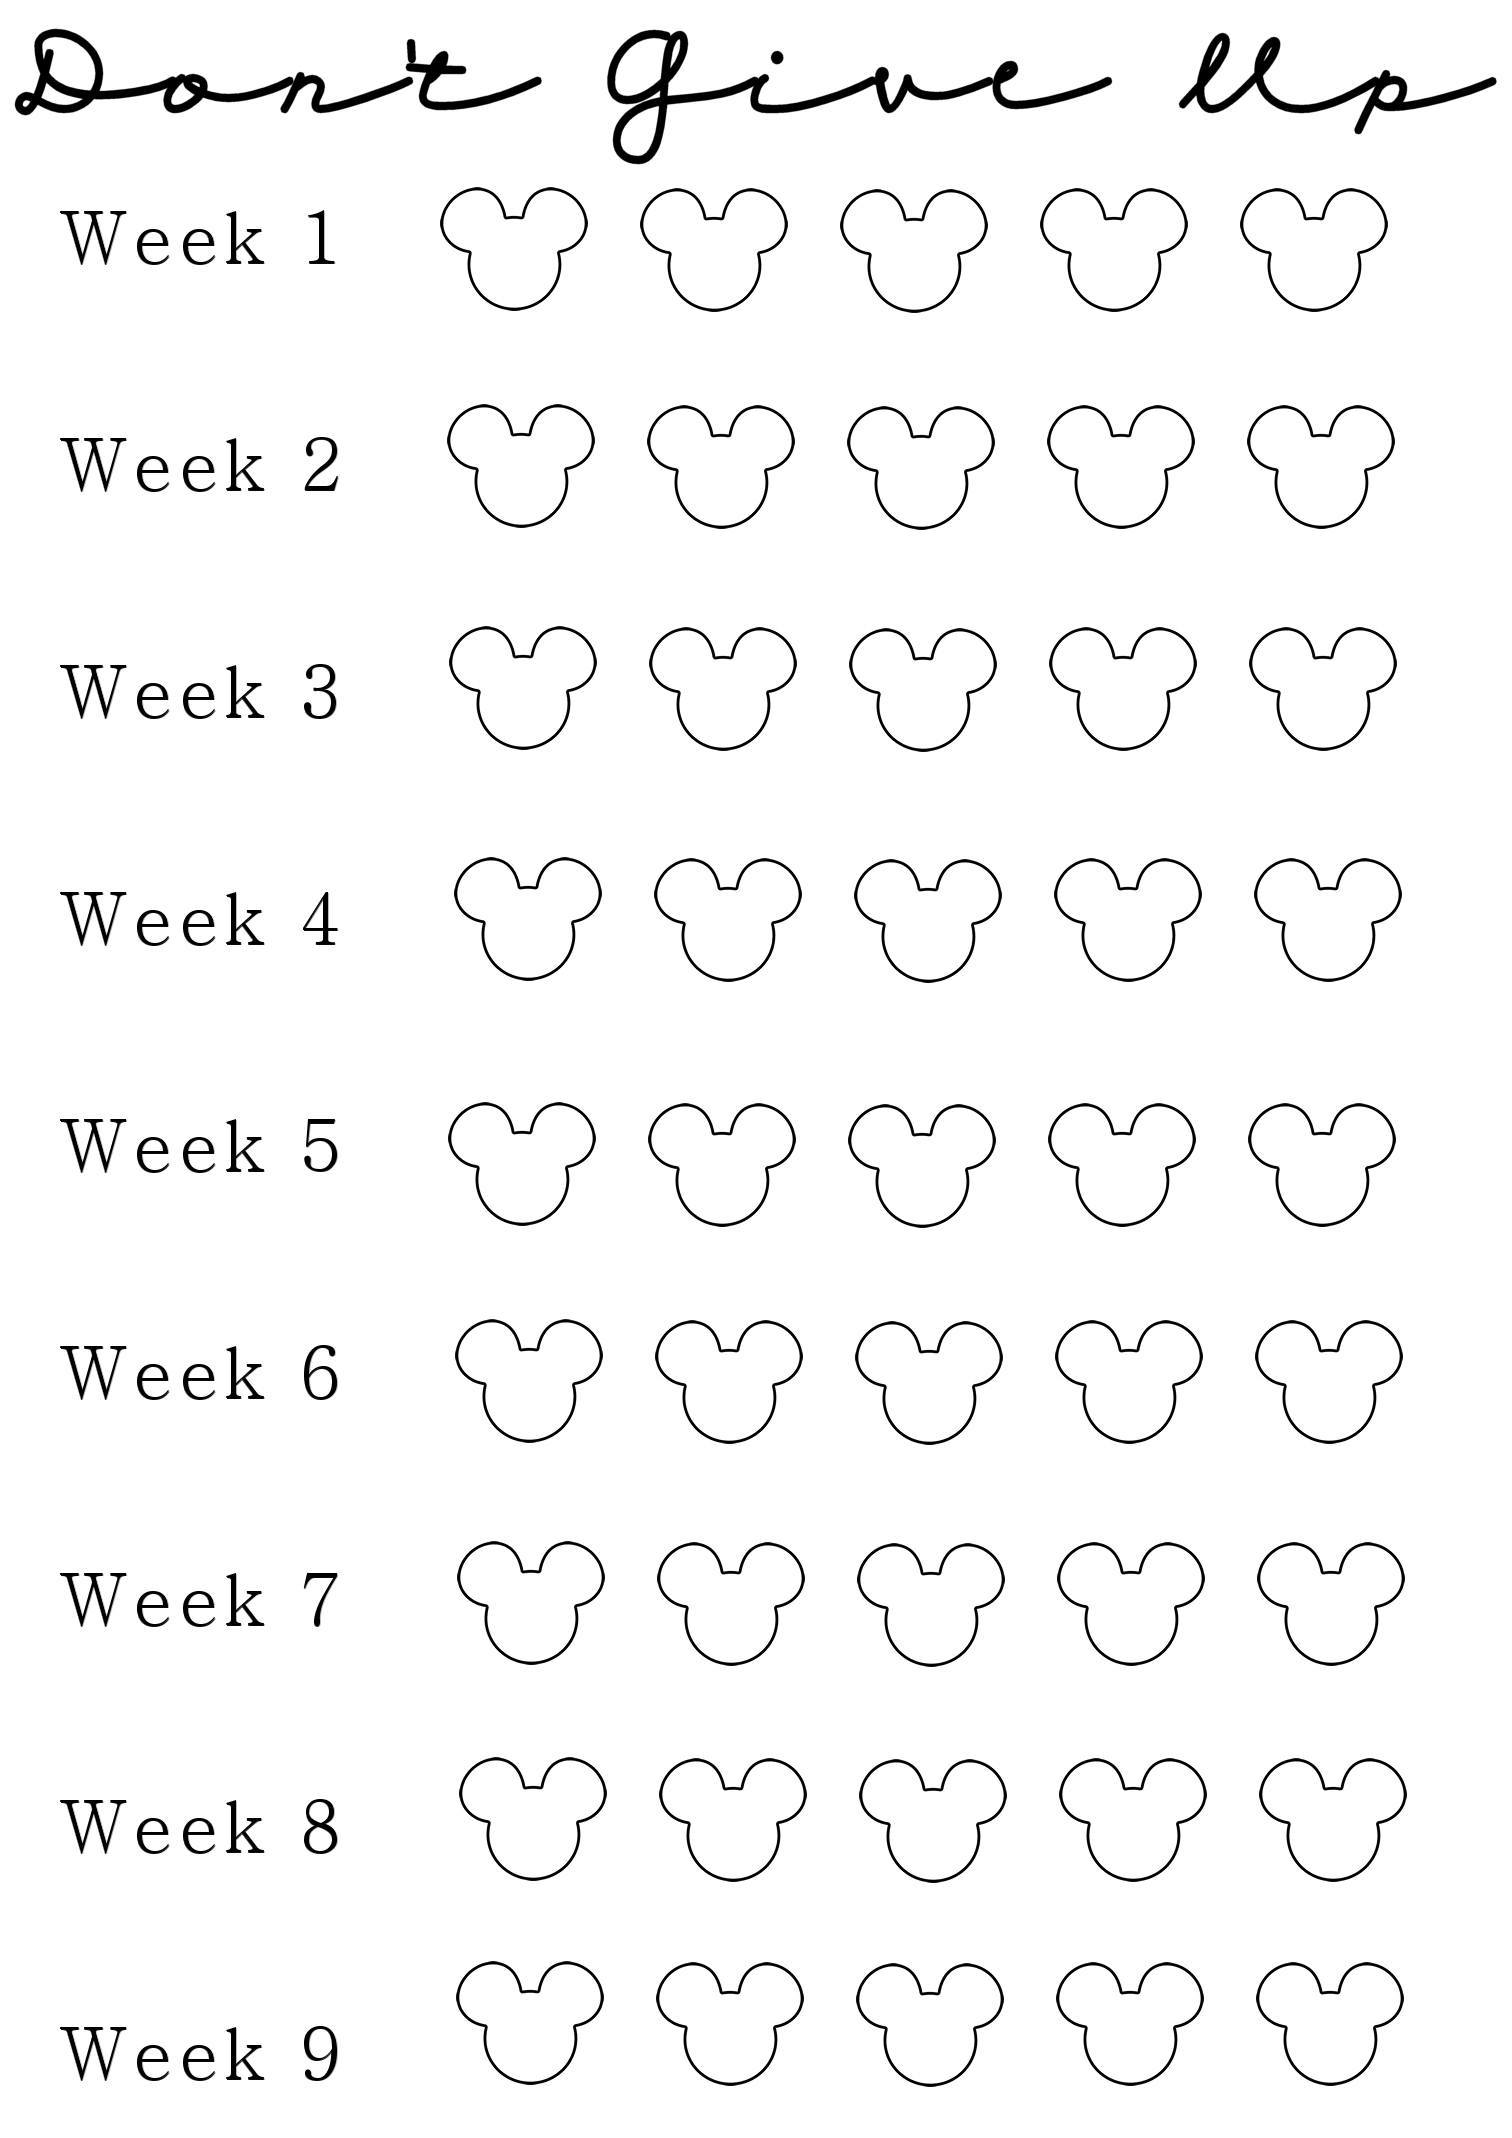 Week 2 of My Nine Week Weight Loss Challenge!